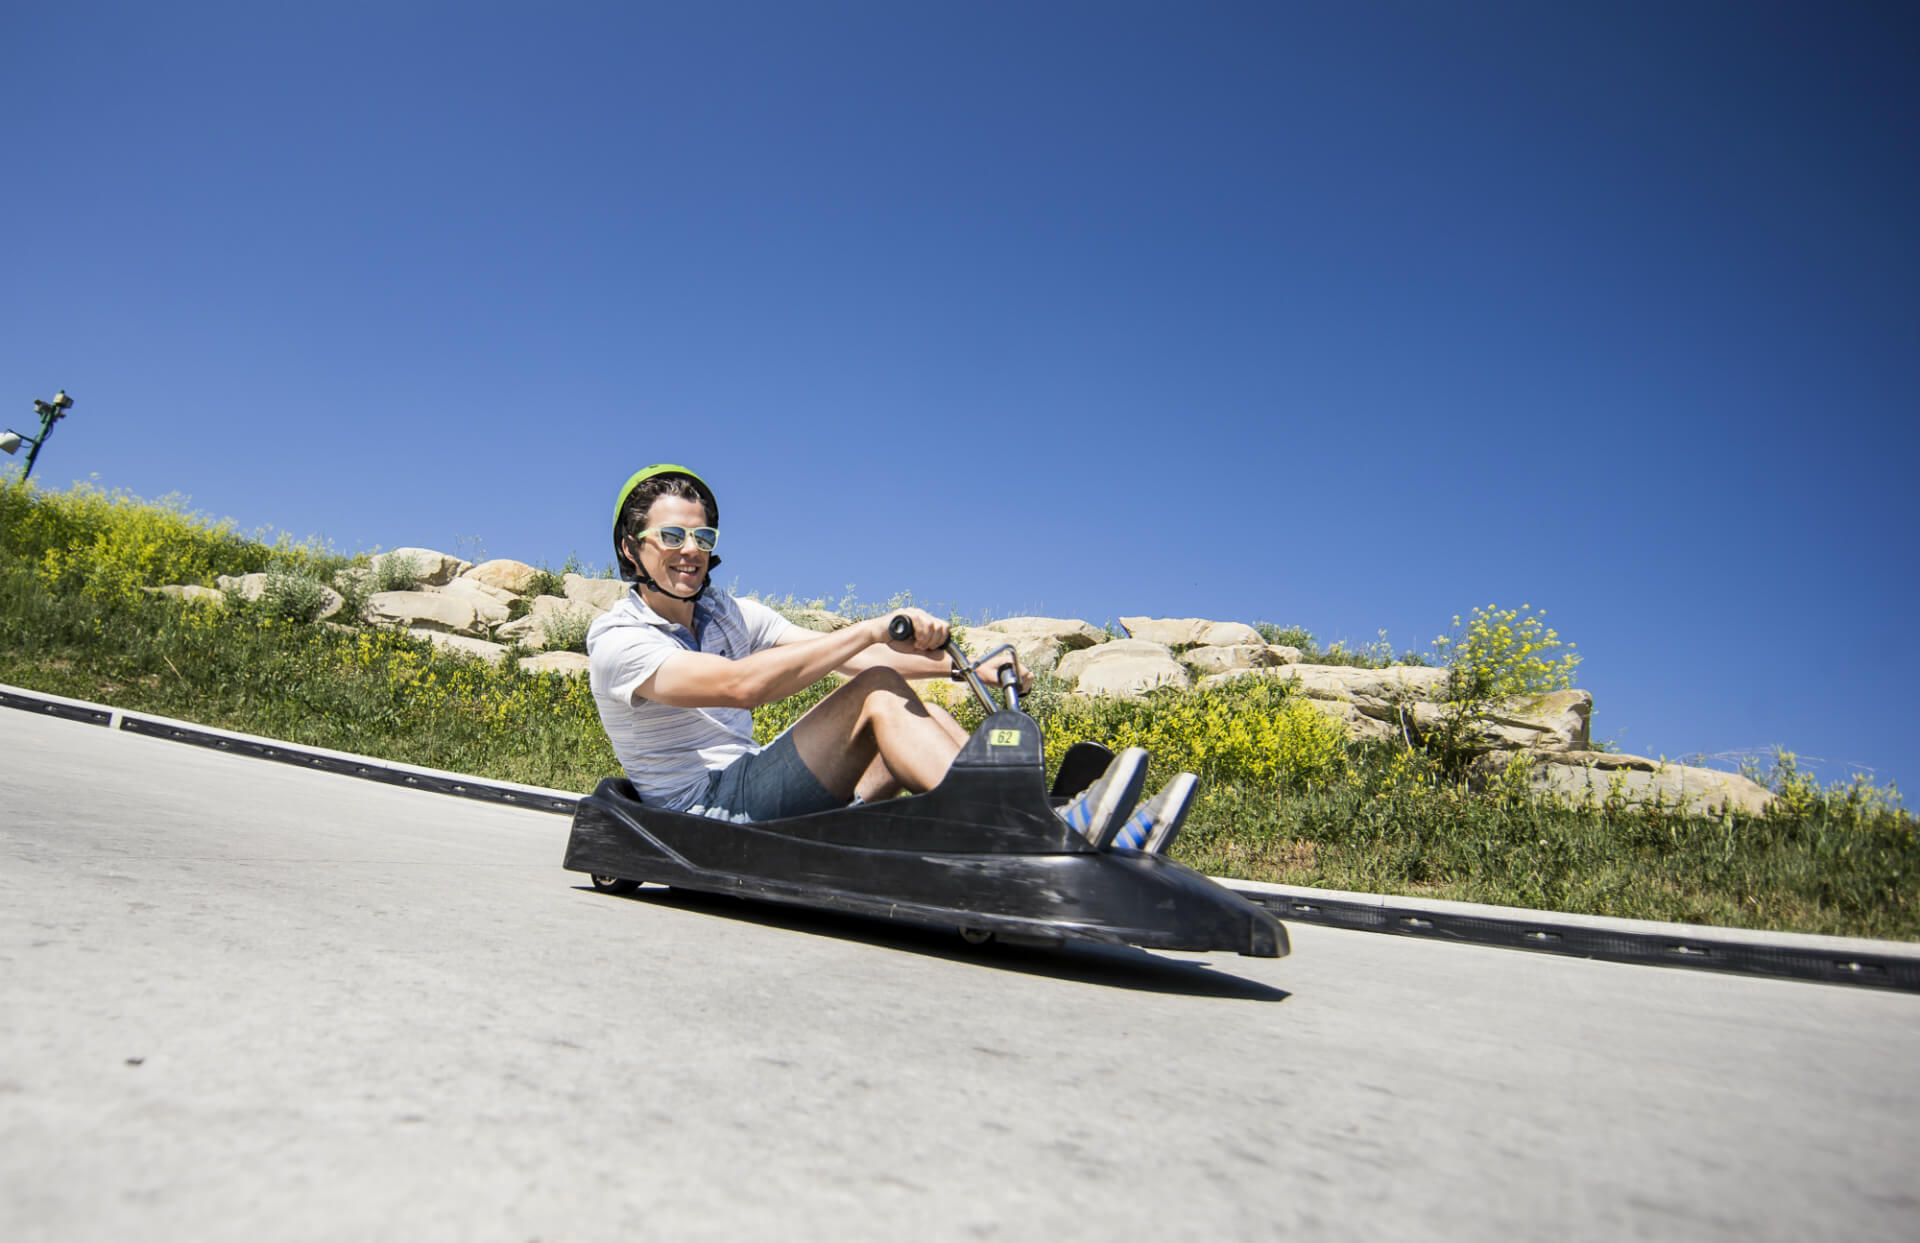 A man grinning as he corners his downhill kart at Skyline Luge Calgary.